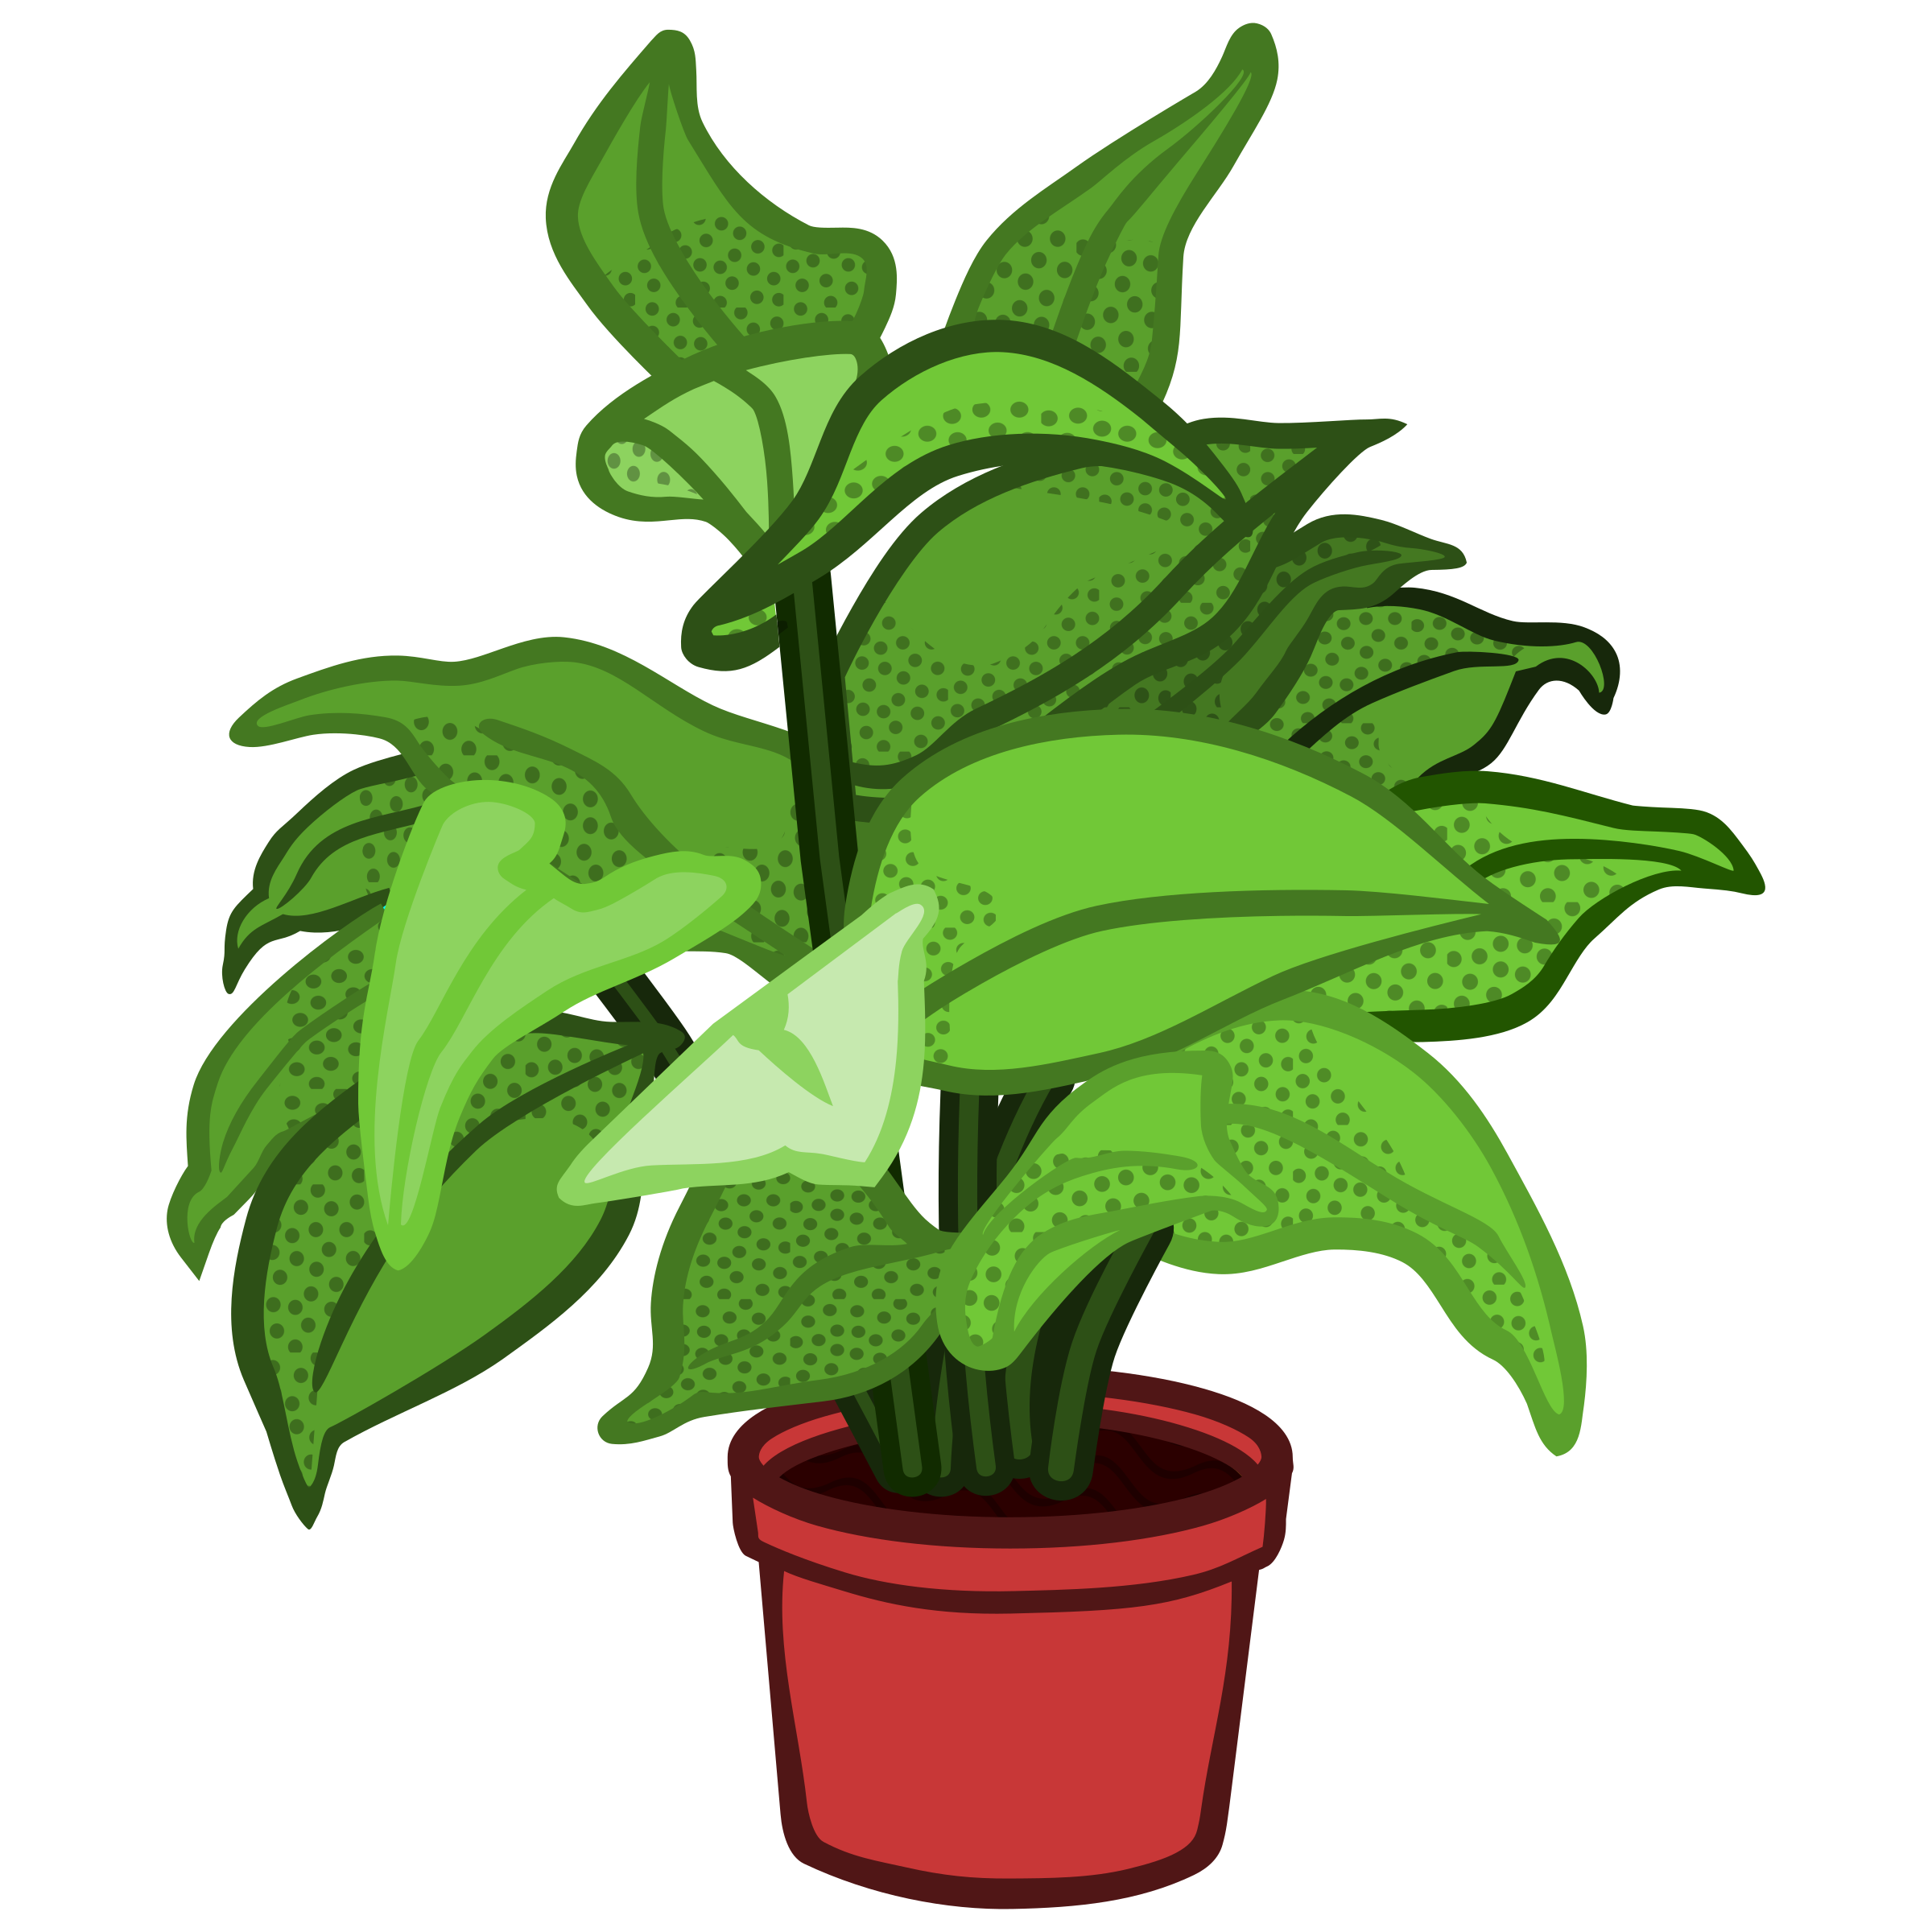 Coloured big image png. Plant clipart potted plant svg free download